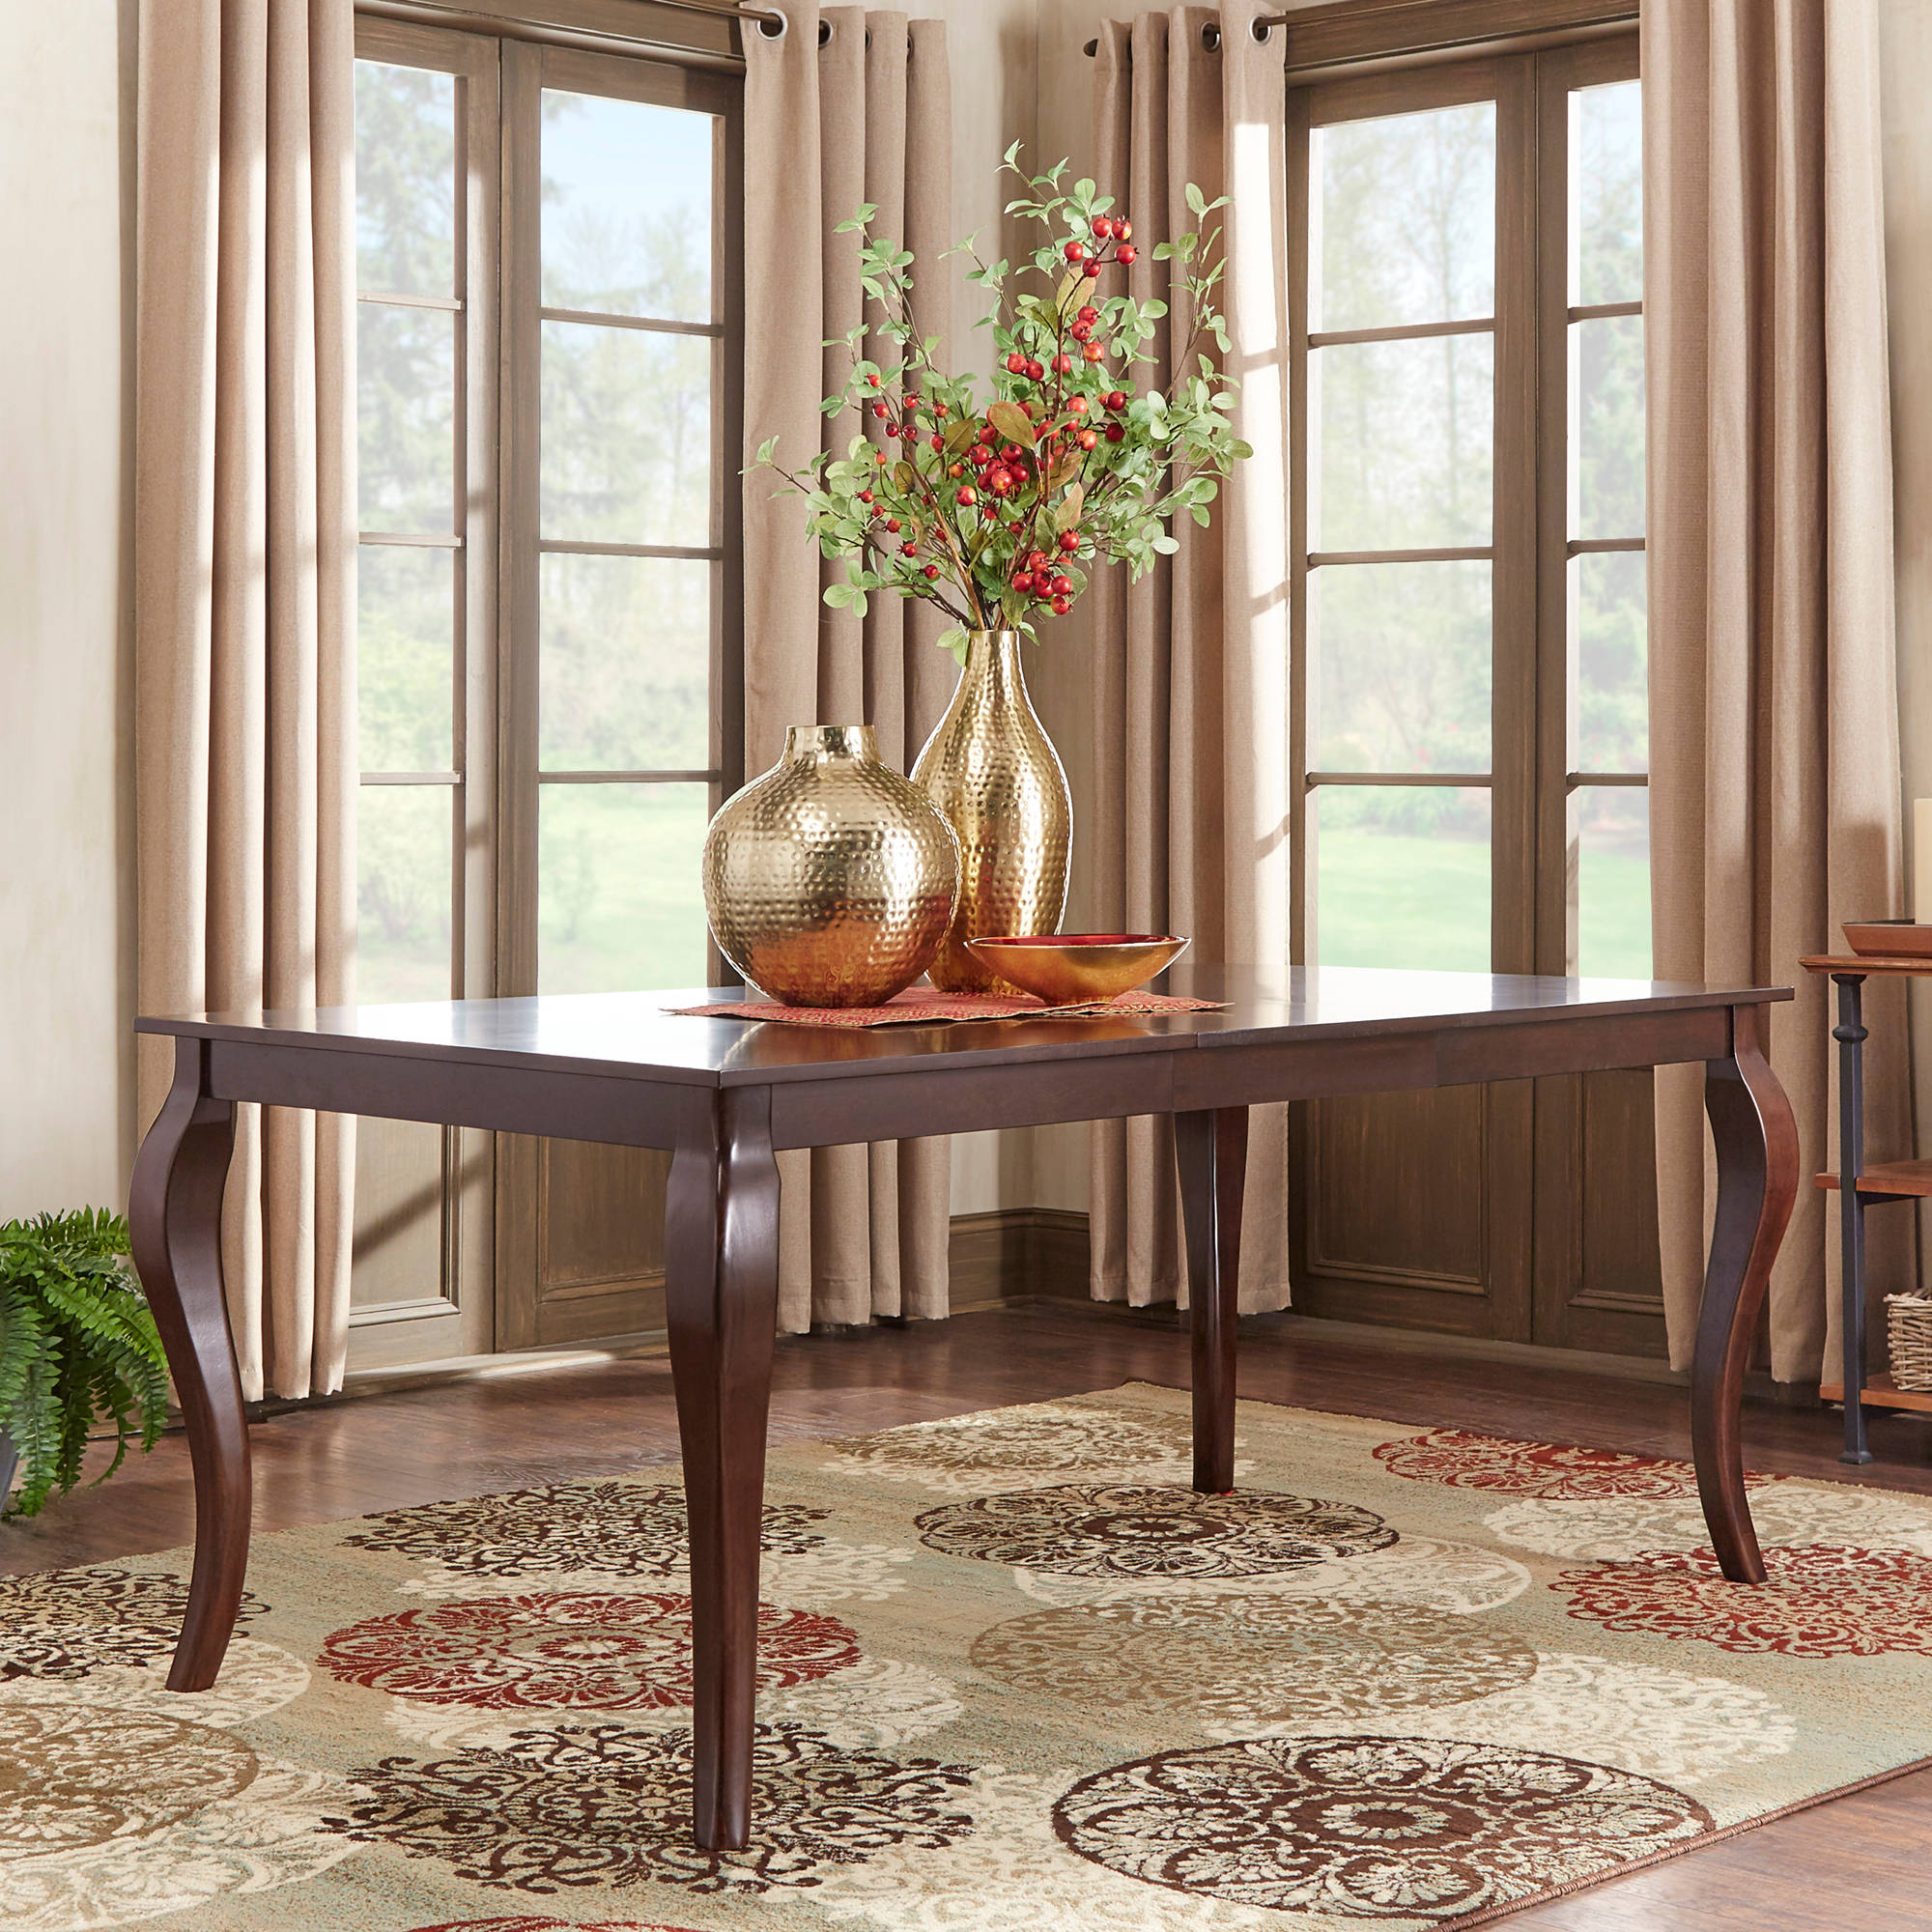 "Weston Home Abram 72"" Dining Table, Cabriole Table Leg"